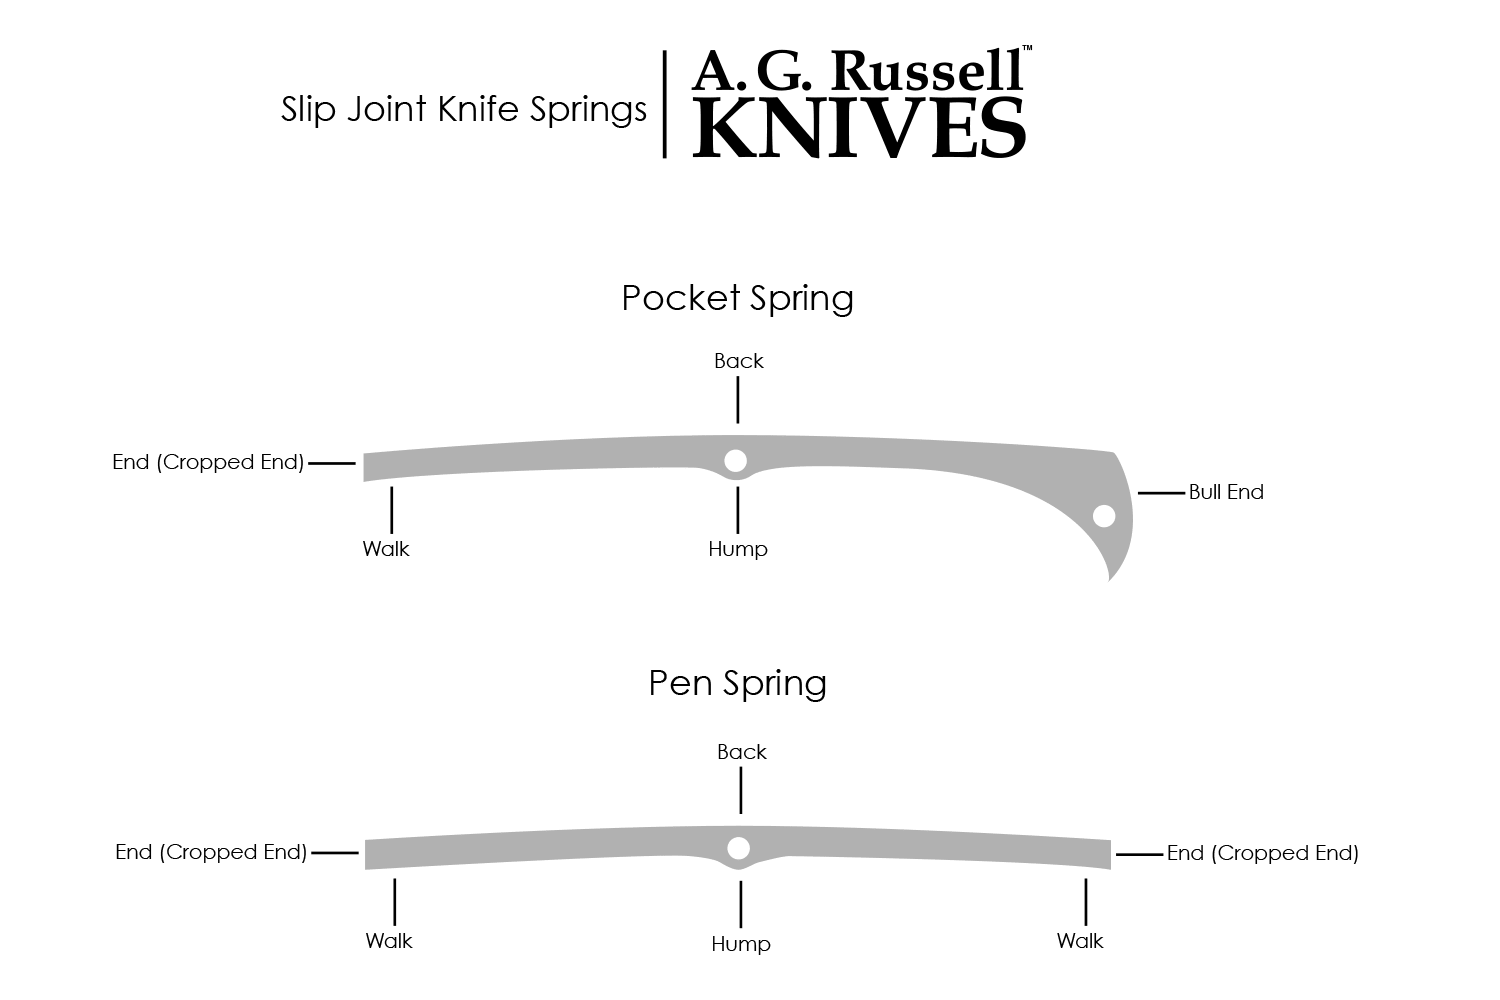 Slip Joint Knife Spring Diagrams and Terms